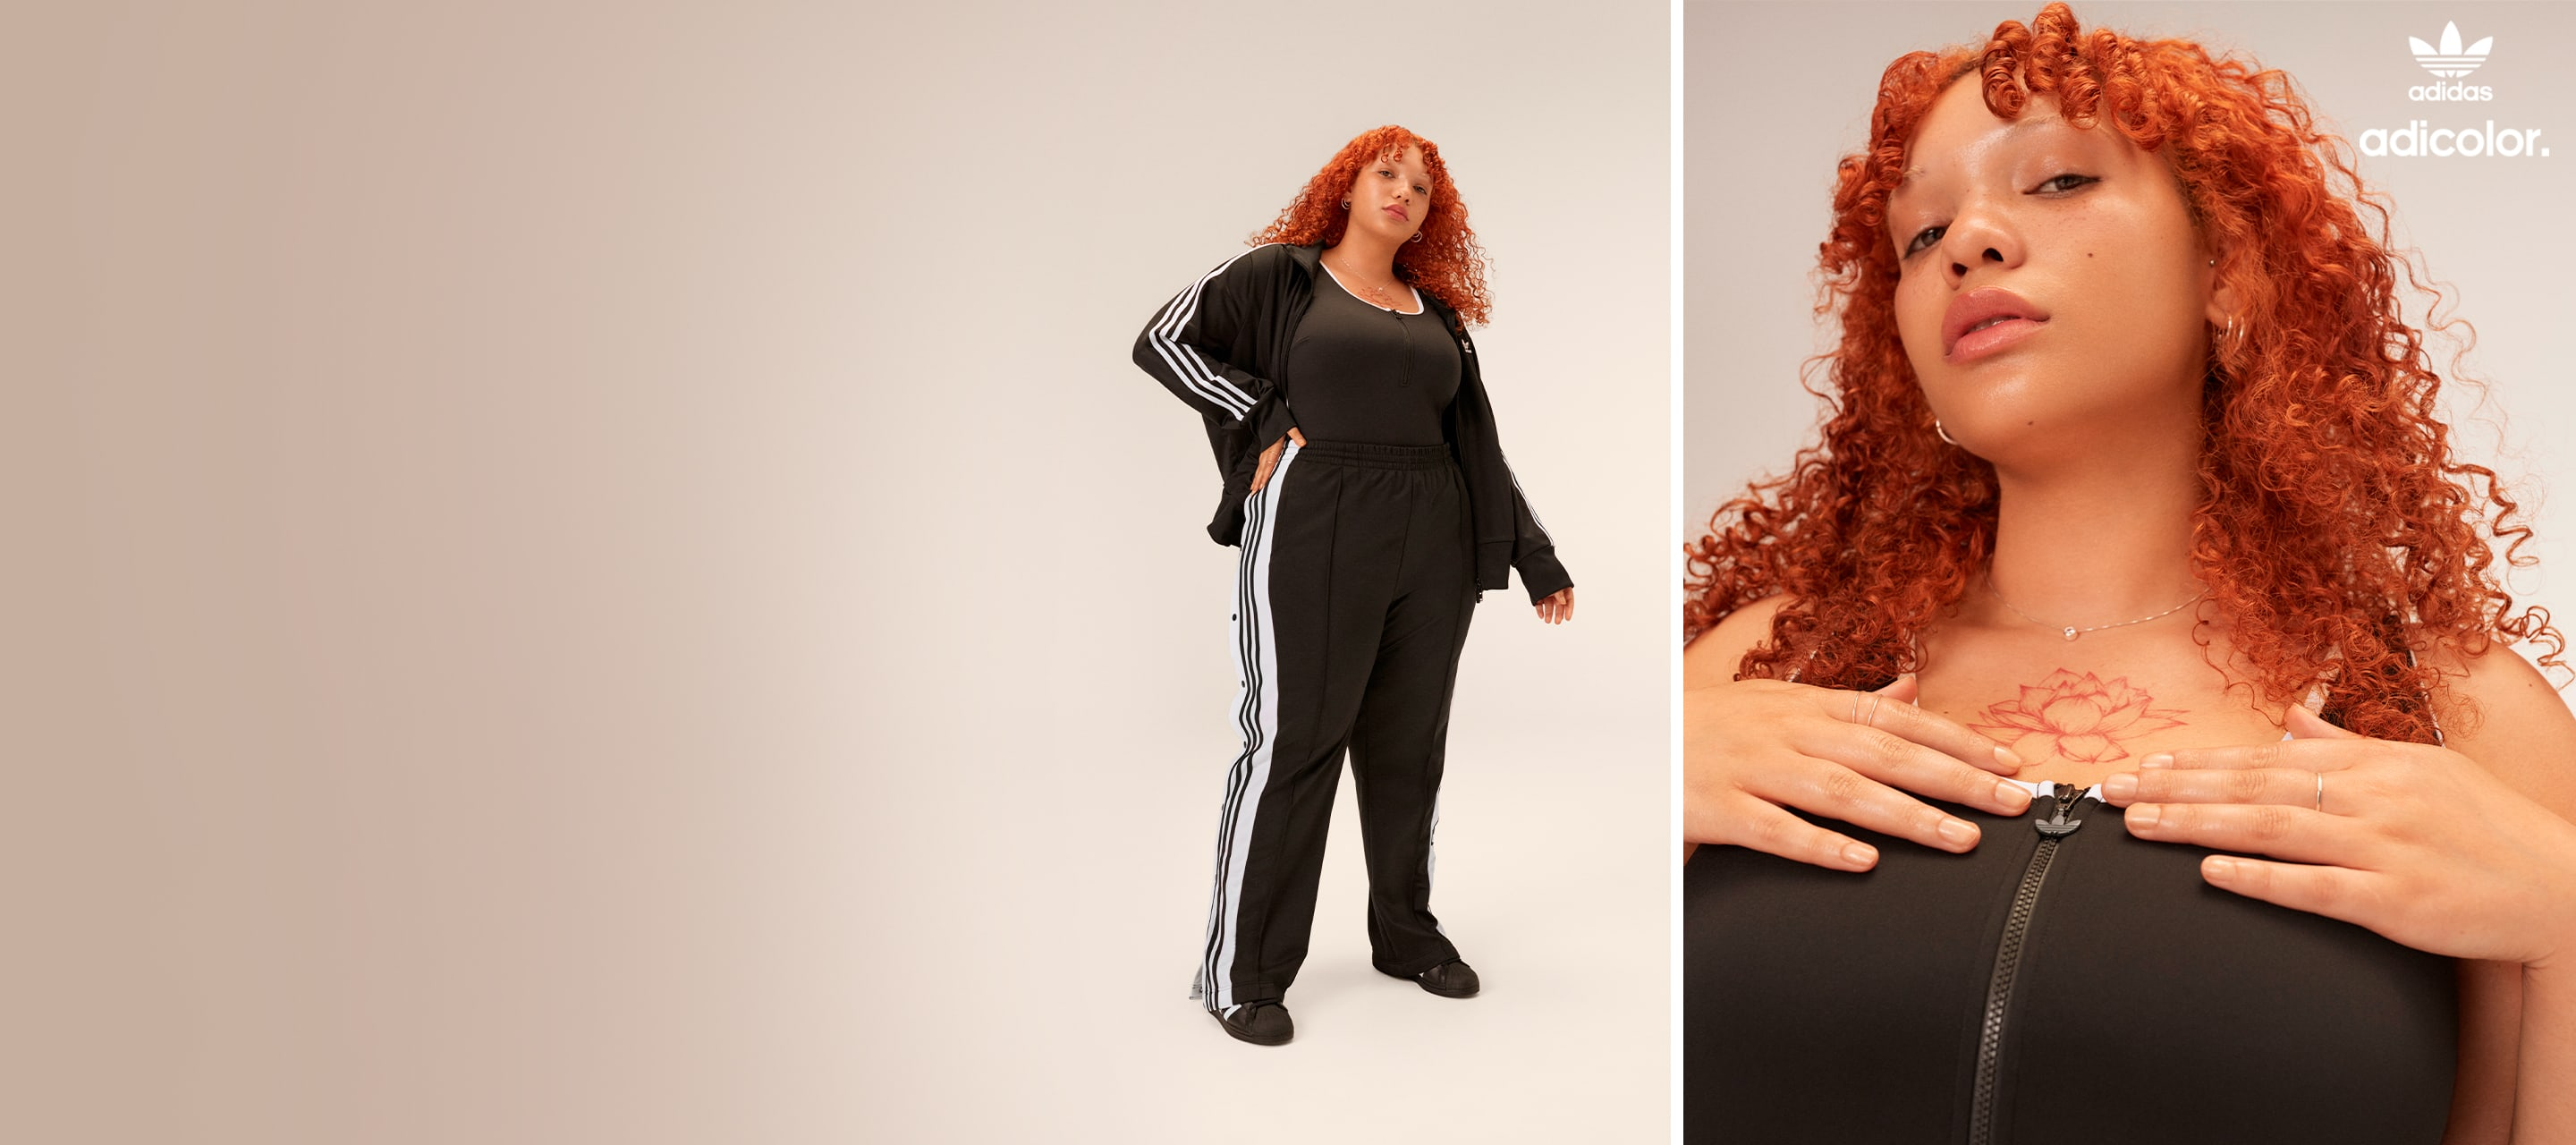 Expressive woman wears classic black adicolor outfit